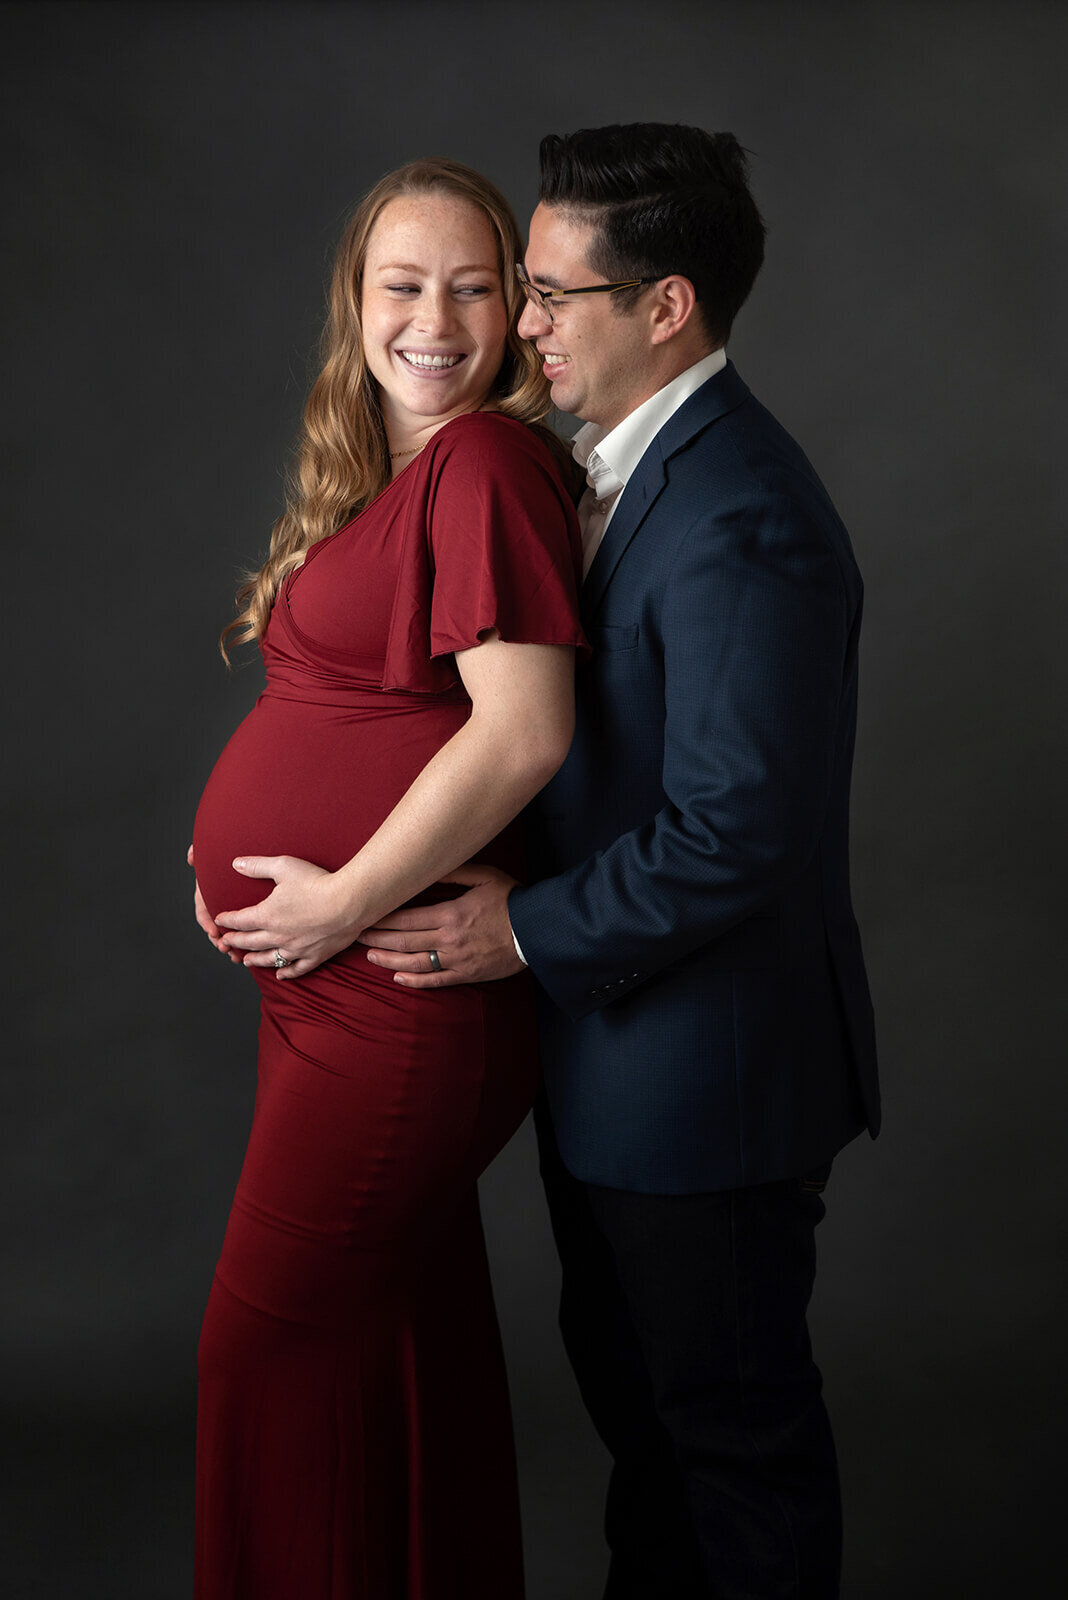 maternity-photography-las-vegas-030